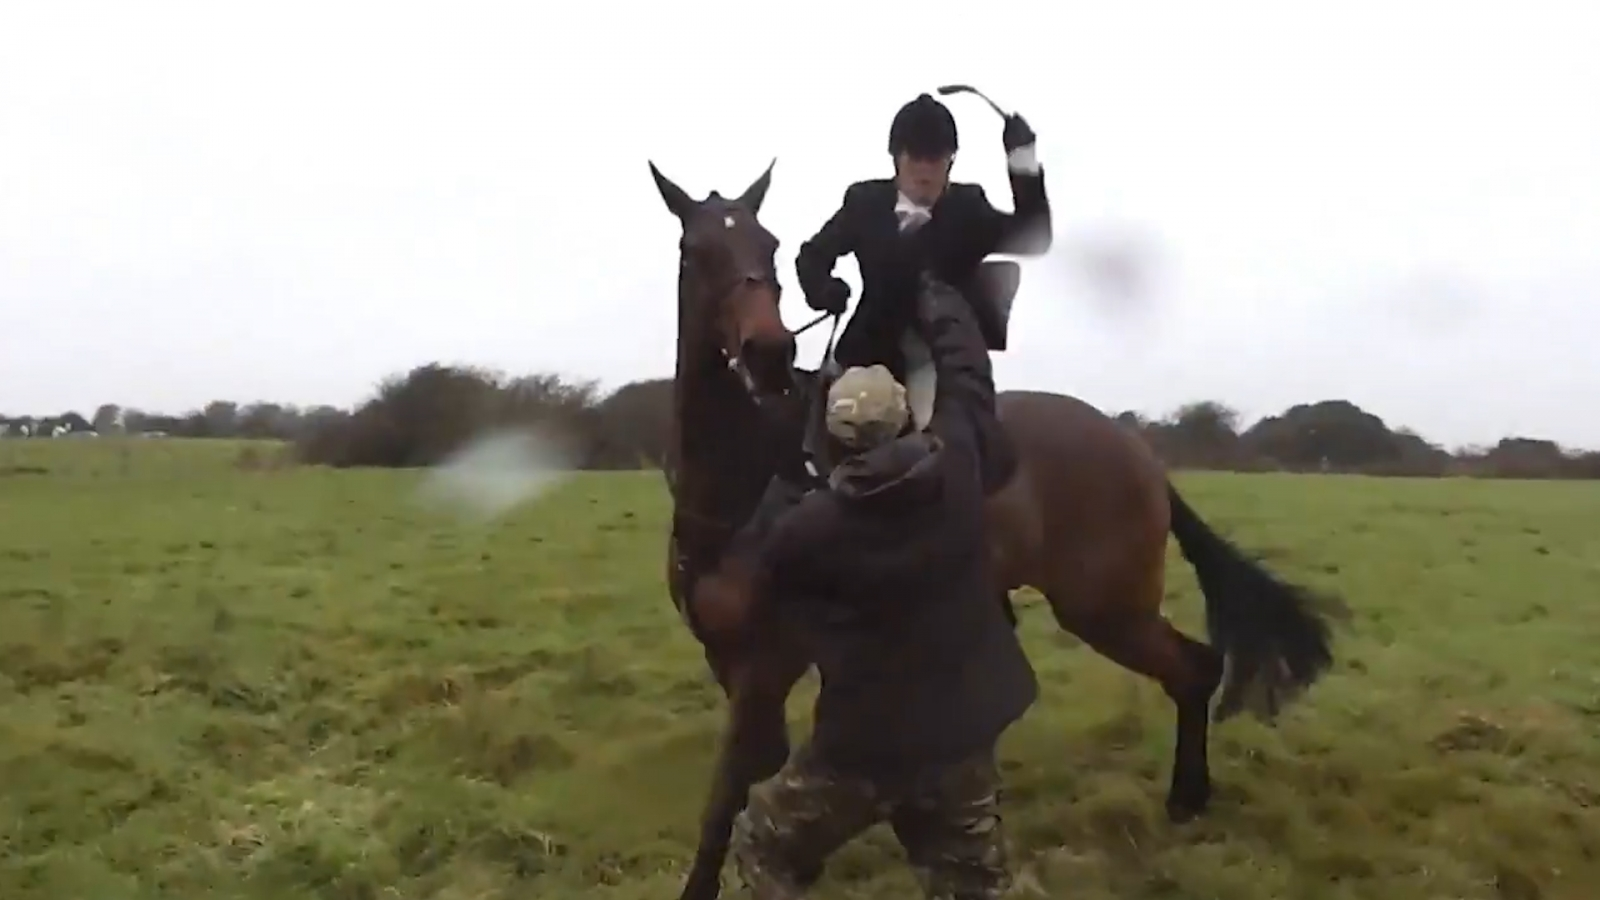 fox-hunter-seen-whipping-activist-with-riding-crop